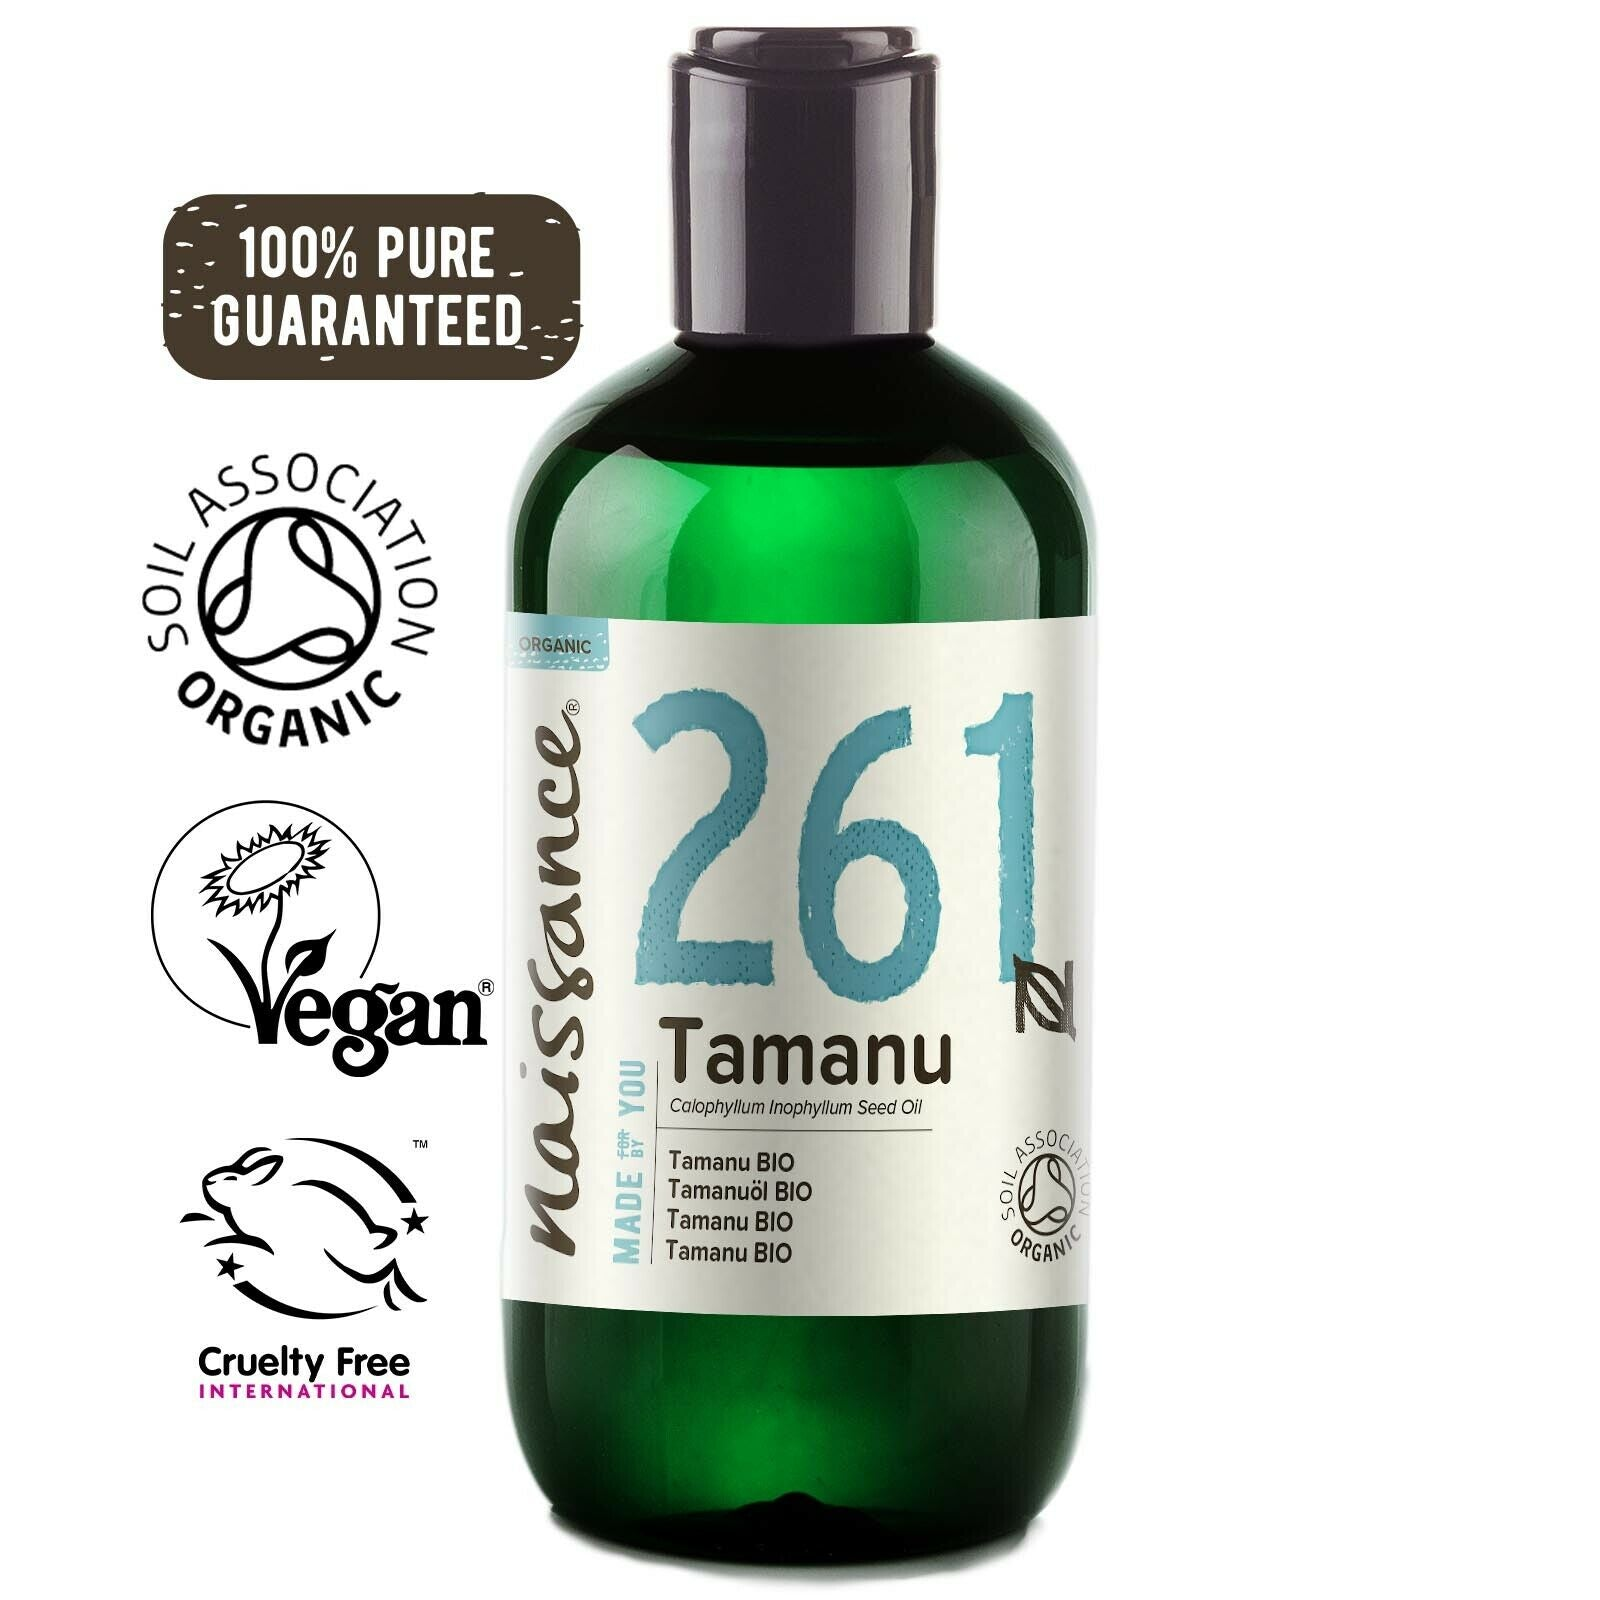 Naissance Tamanu Oil 250ml cold pressed certified organic 100% pure for skincare